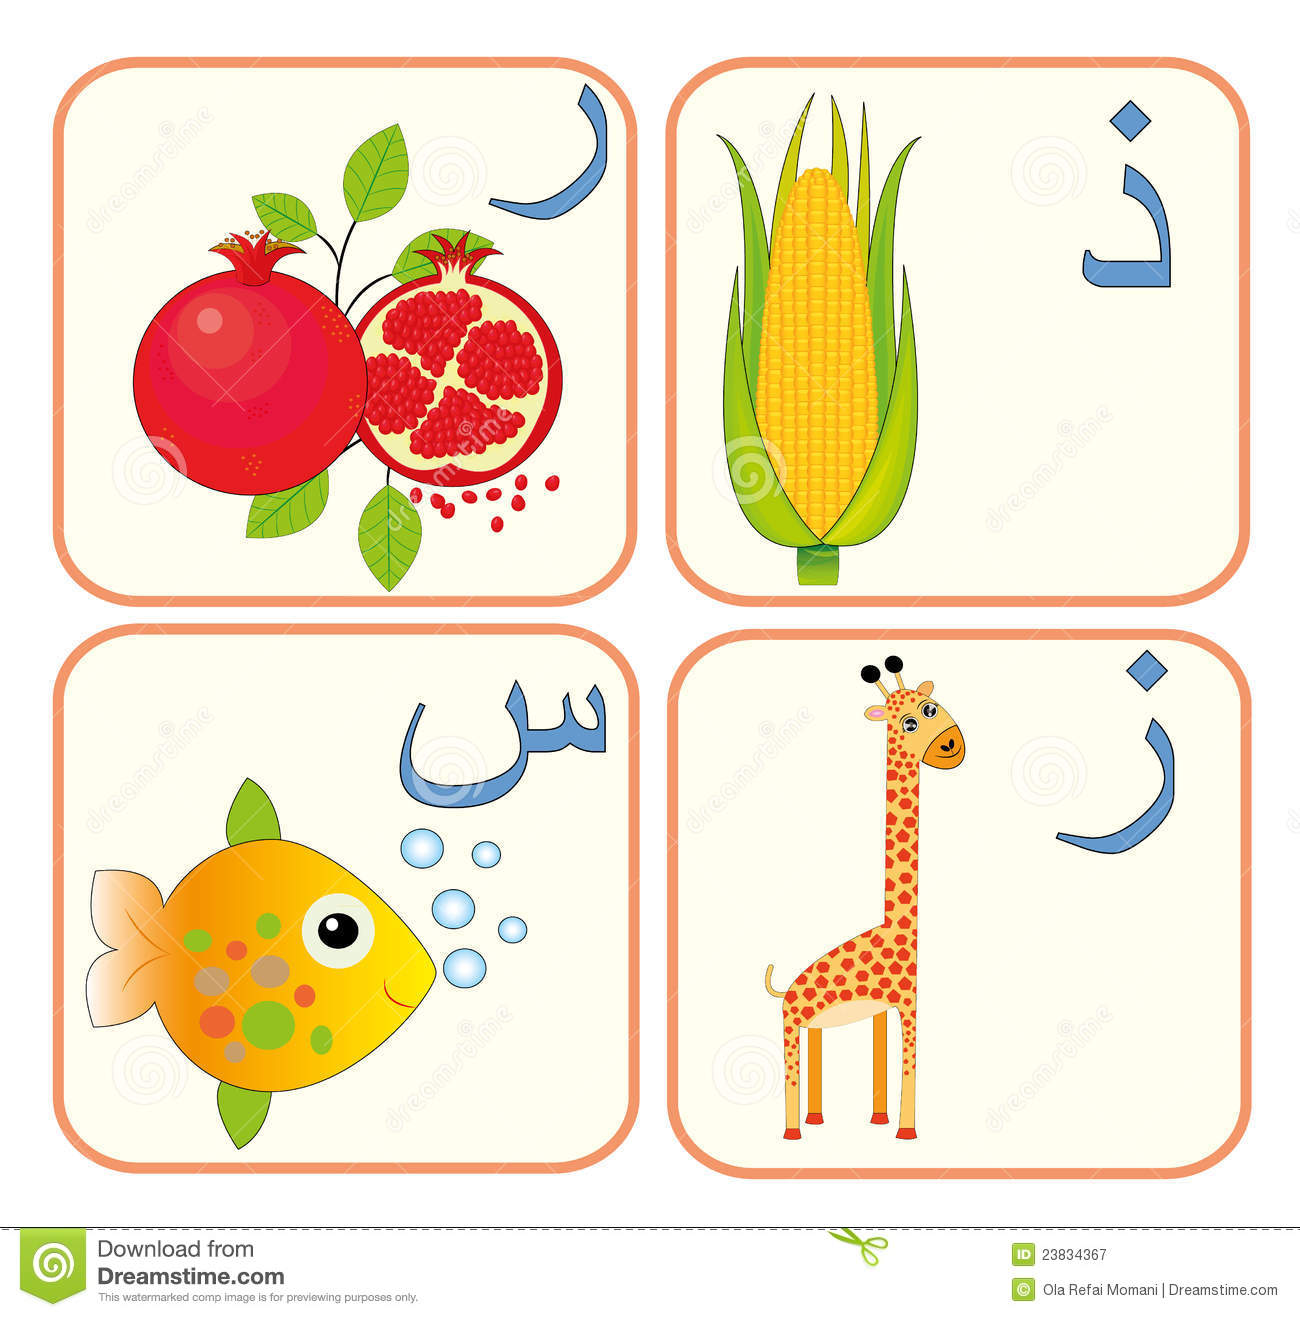 Arabic alphabet for kids with cute animals and fruit for each letter - Alphabet Arabic Cute Kids Pomegranate Fruit Fish Animal